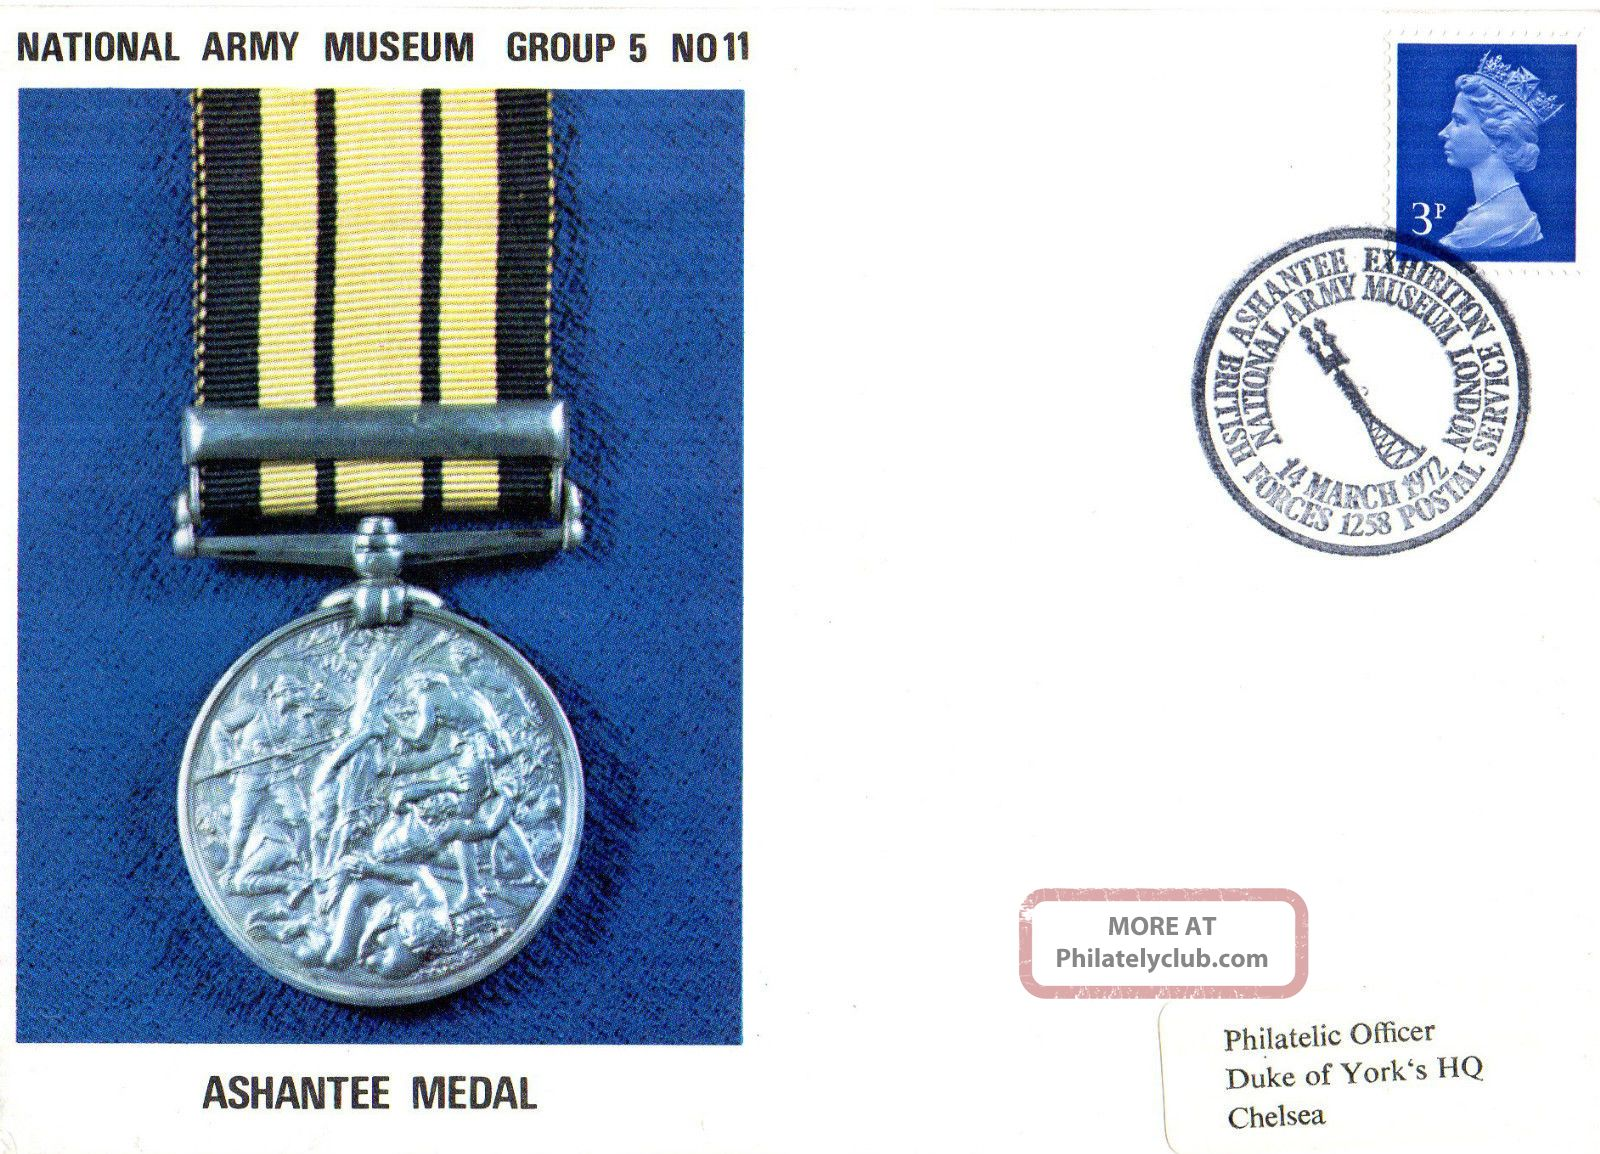 1972 Ashantee Medal 5/11 Army Museum Commemorative Cover Shs Topical Stamps photo